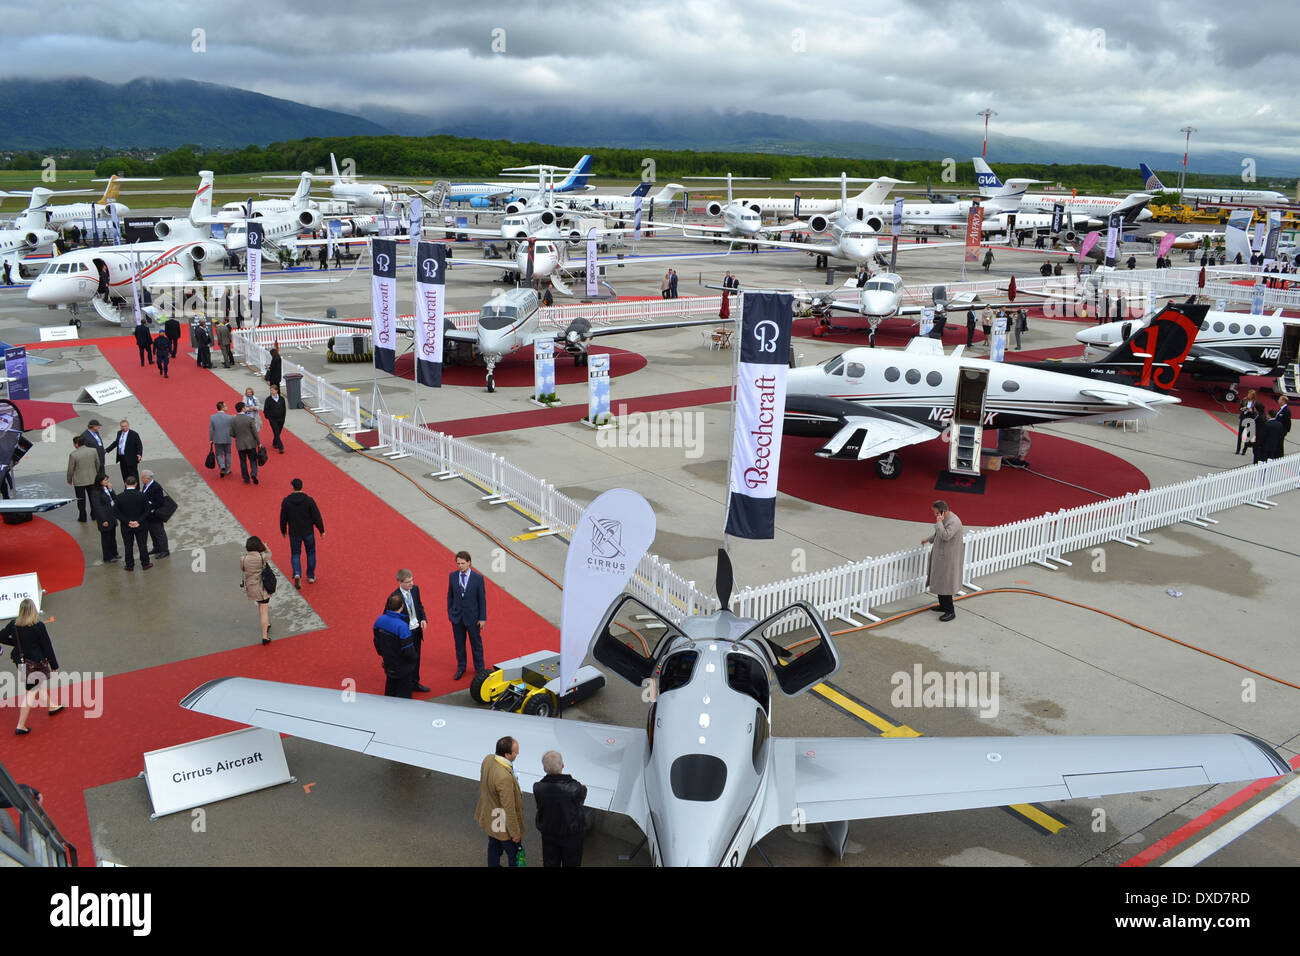 Aircraft at the 2013 Ebace exhibition at Geneva International Airport, Switzerland. Stock Photo